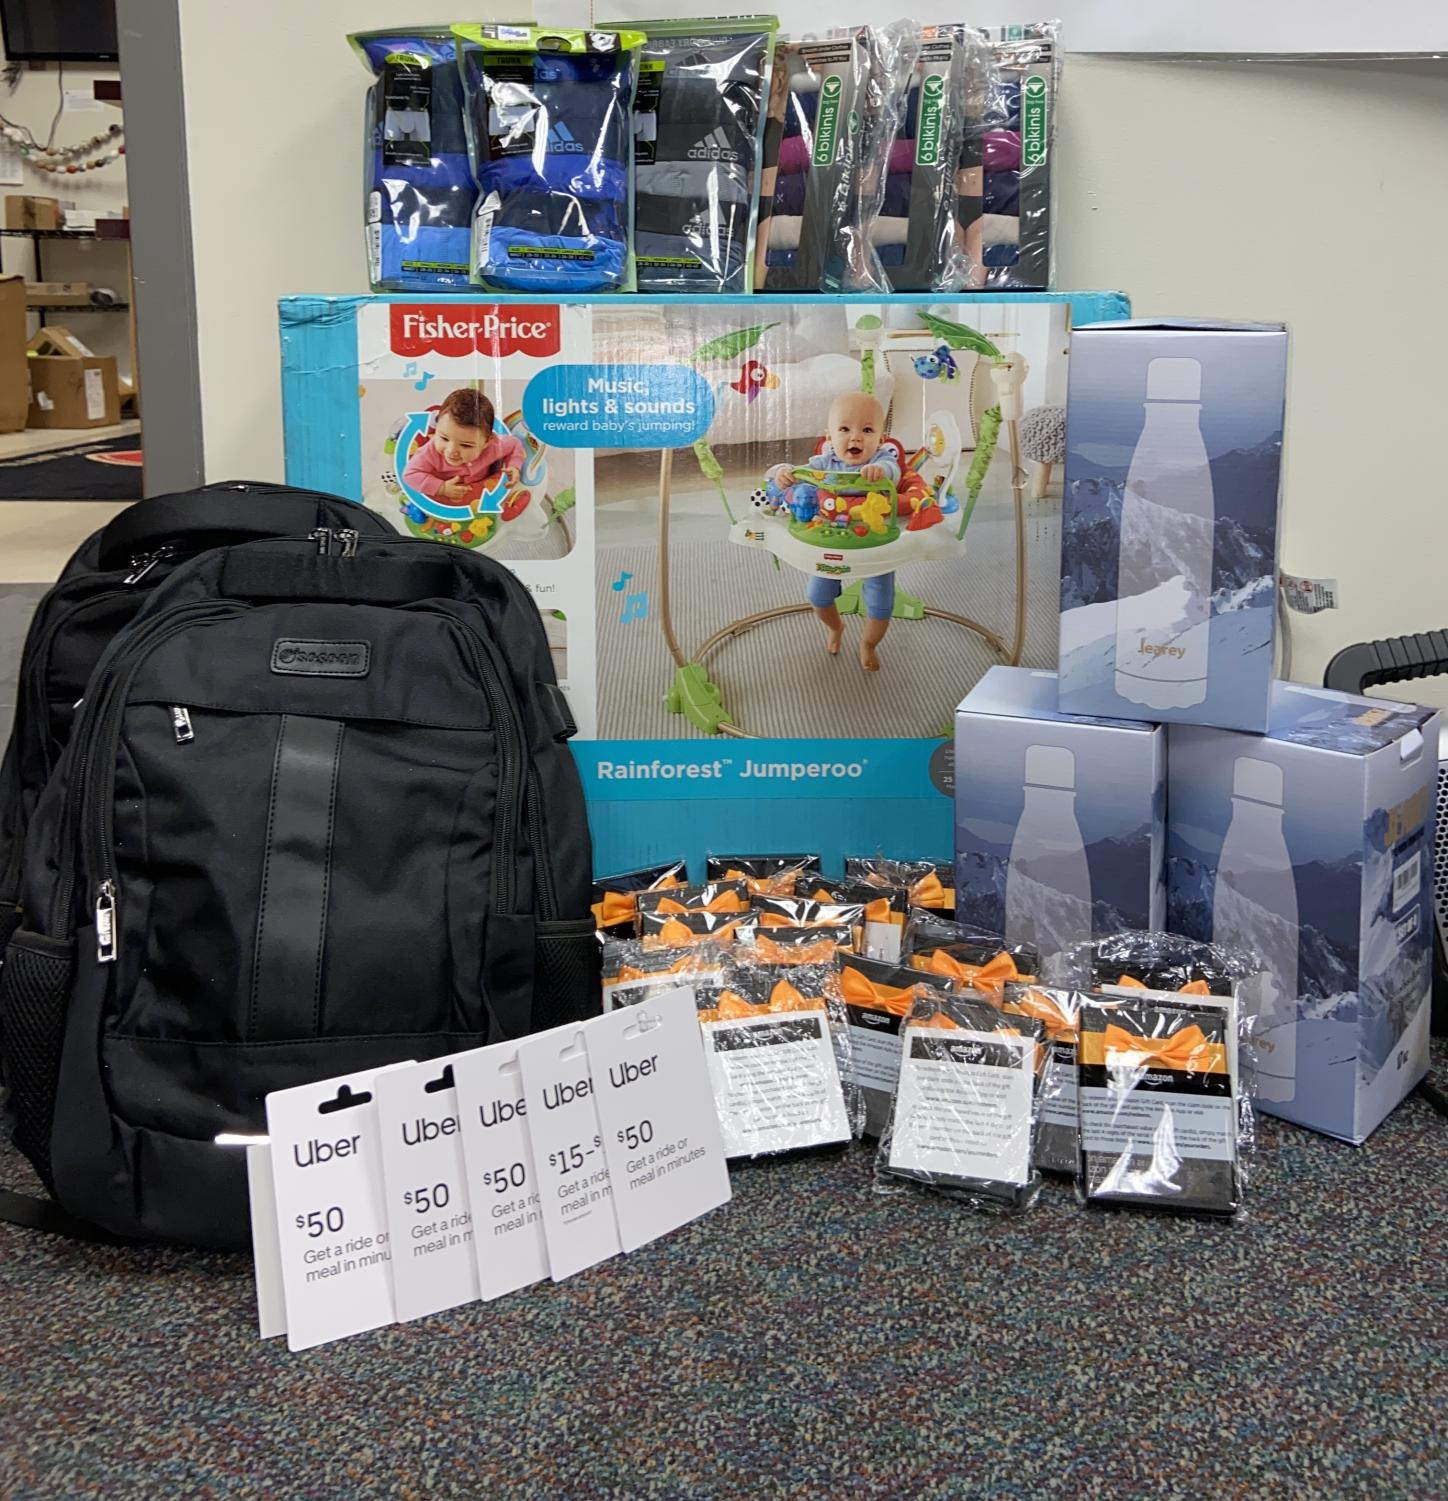 GOODIES GALORE: Grady Cares raises Backbacks, Amazon giftcards, waterbottles, Uber giftcards, underwear, and baby's play toys to be donated to students and families in need. Overall, this community organization has raised over $10,000 in goods and services.